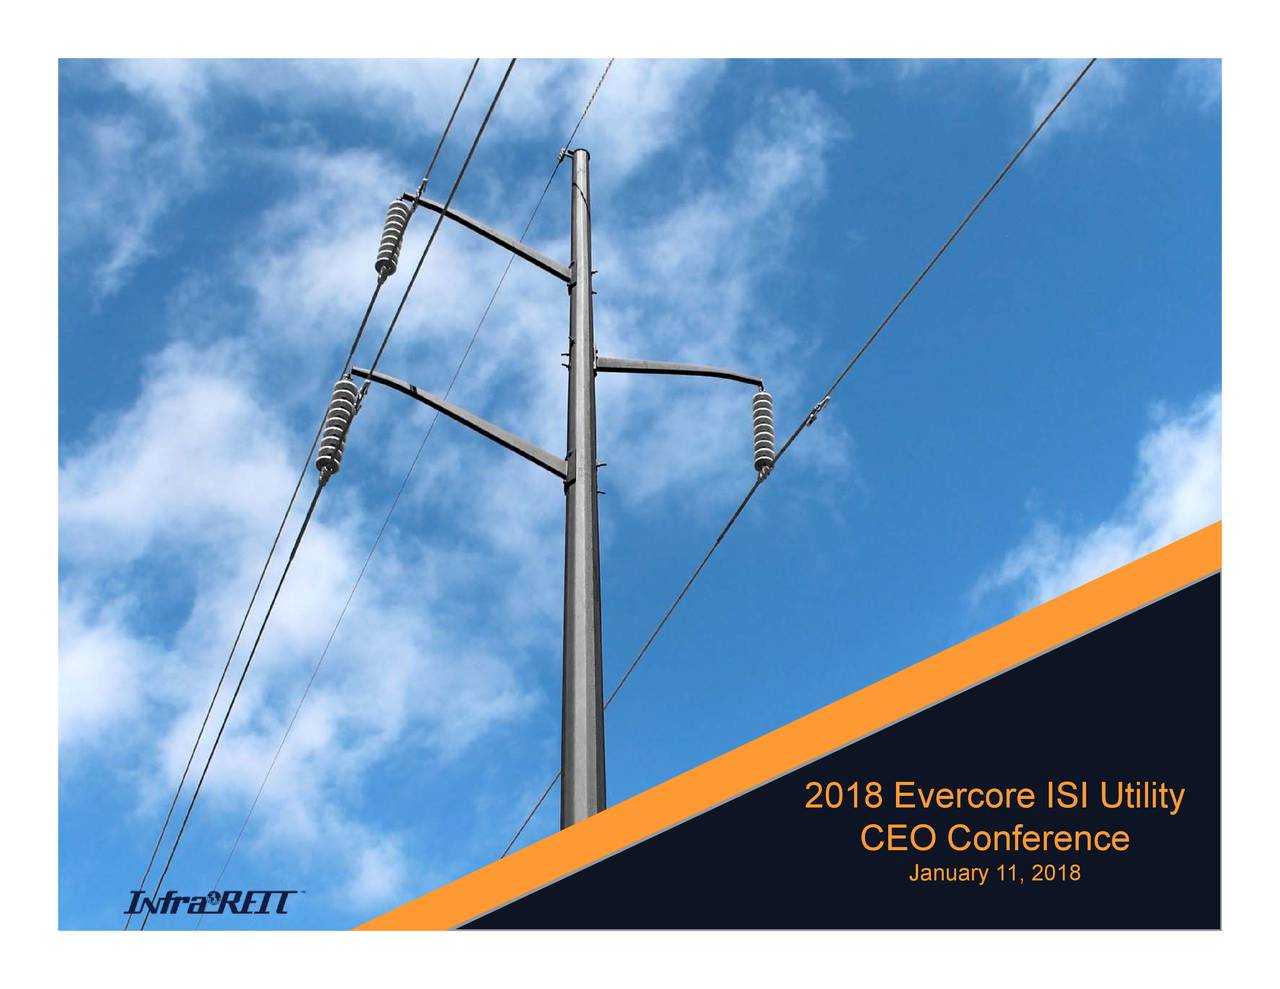 CEO Conference 2018 Evercore ISI Utility